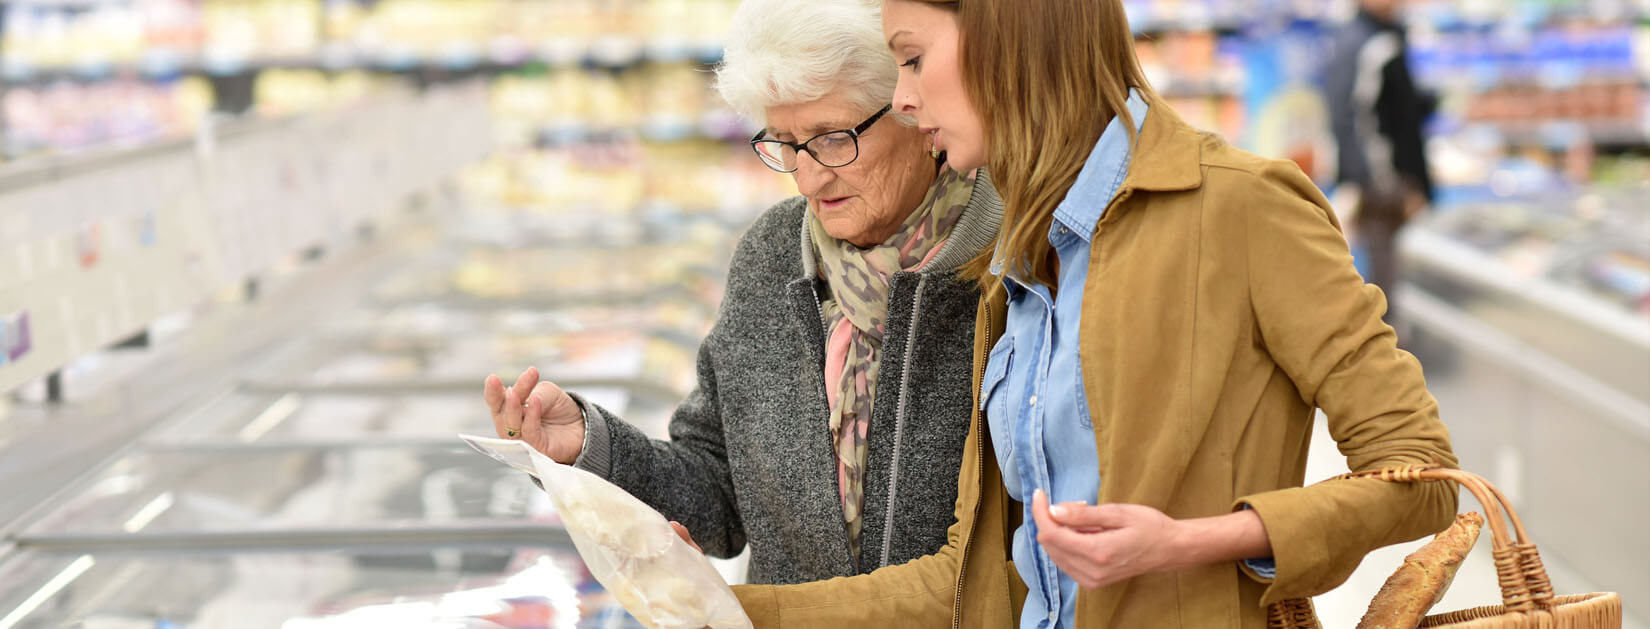 young woman helping an elderly woman read packages in the grocery store